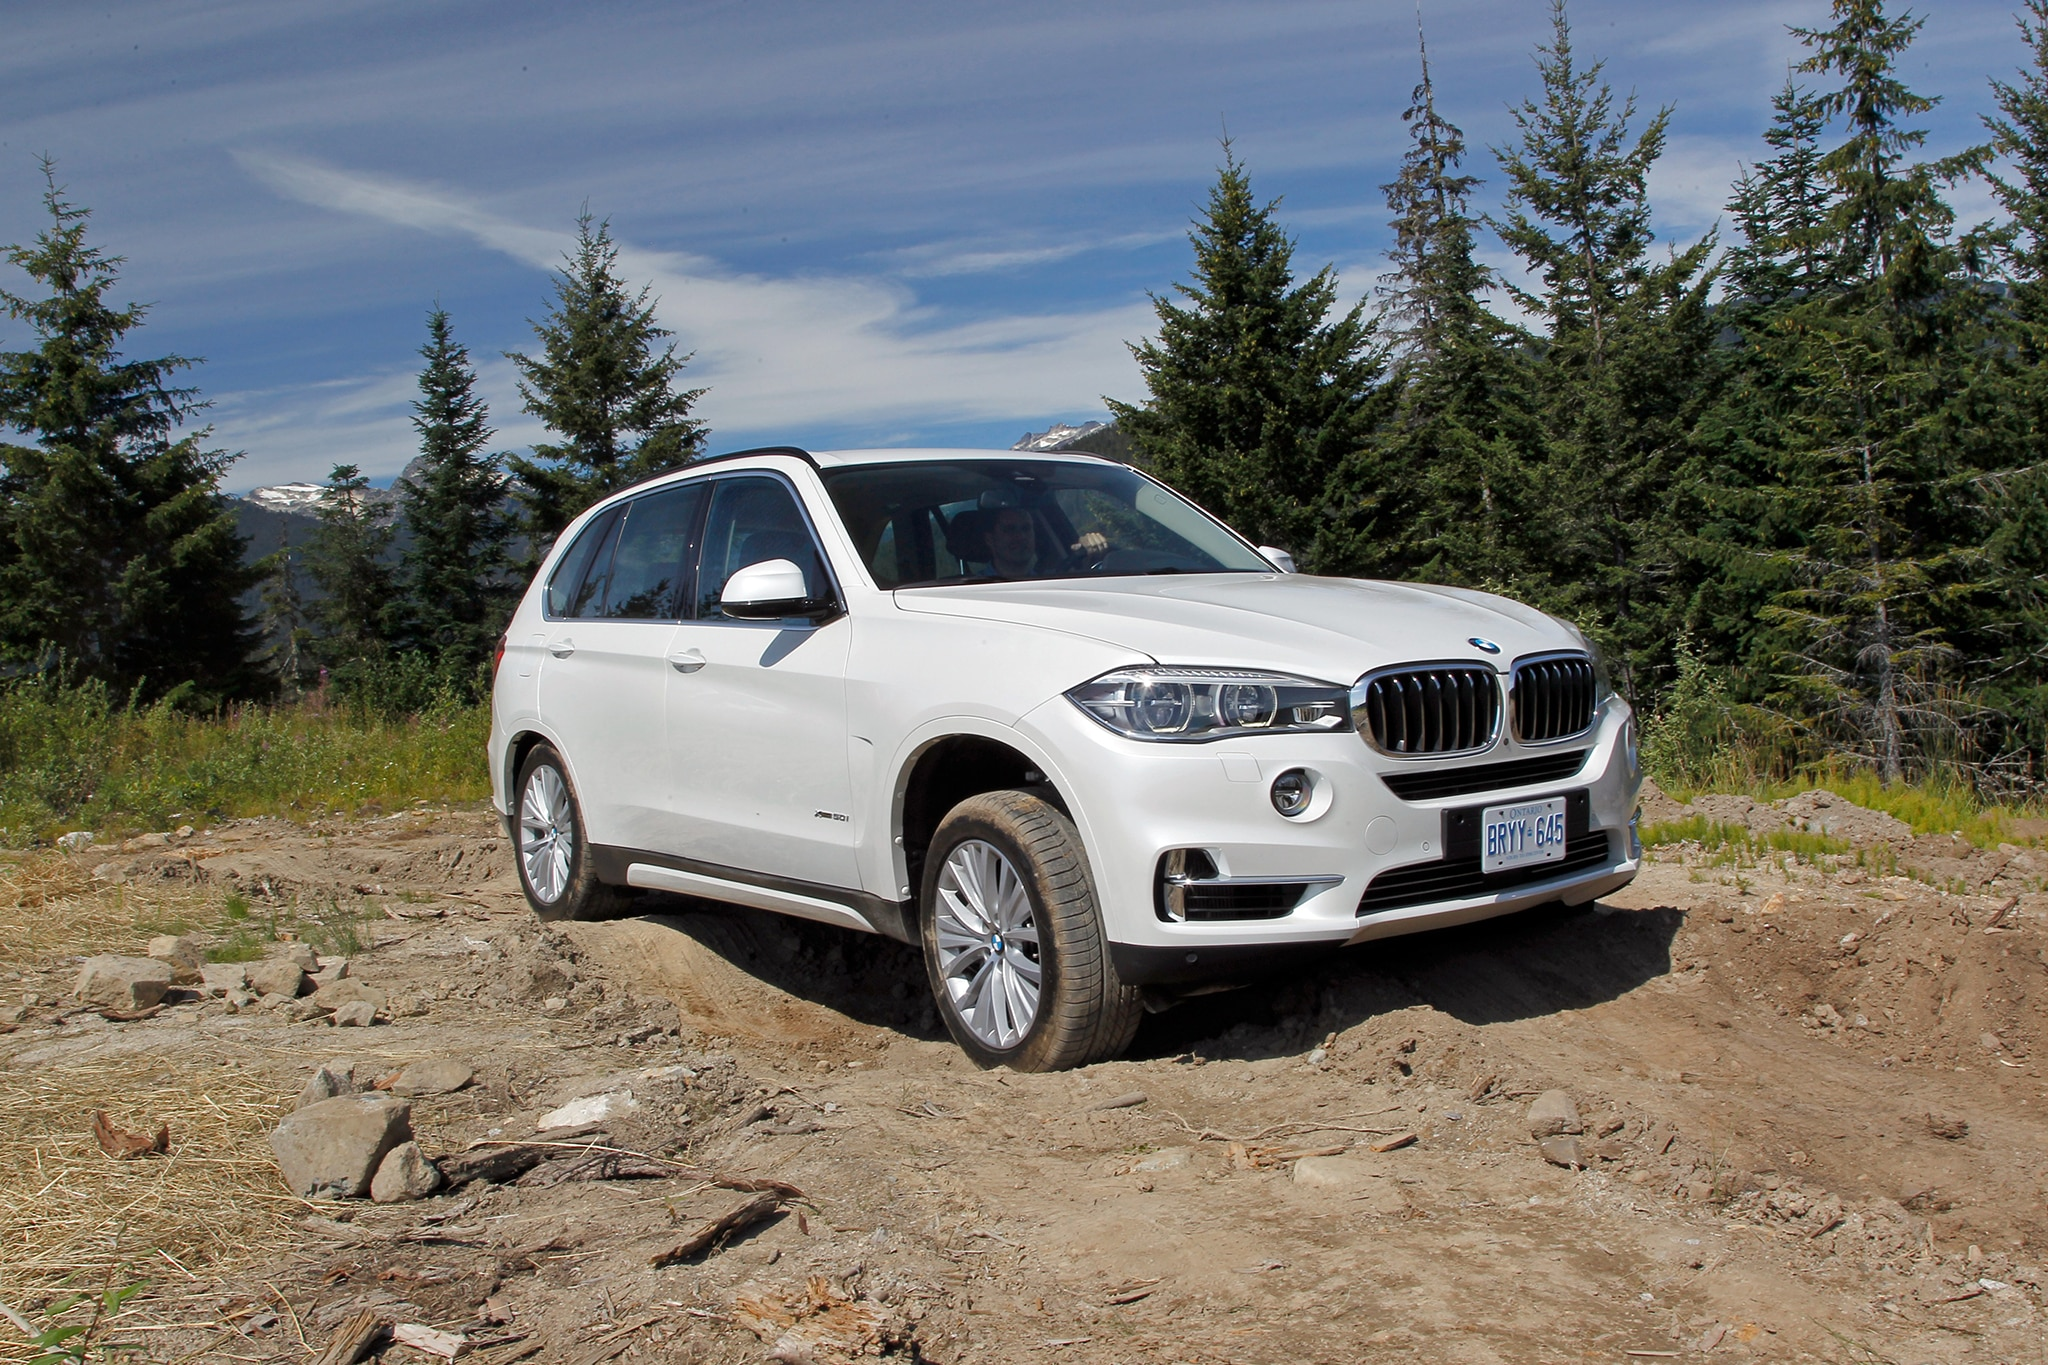 2014 bmw x5 prices in south africa autos post. Black Bedroom Furniture Sets. Home Design Ideas